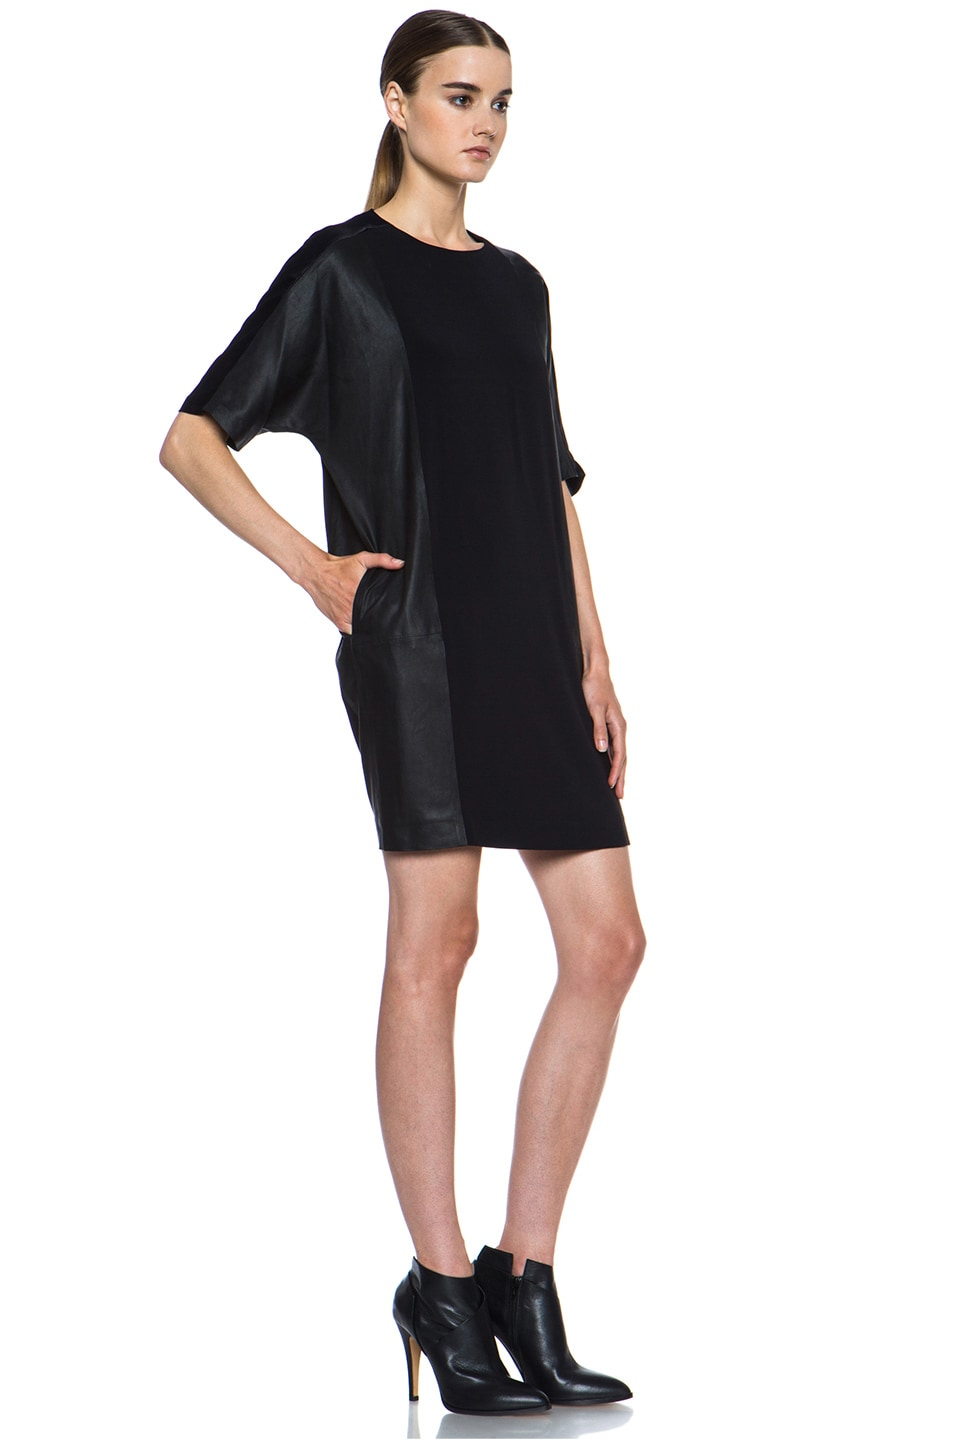 Image 3 of Vince Texture Viscose & Leather Block Dress in Black